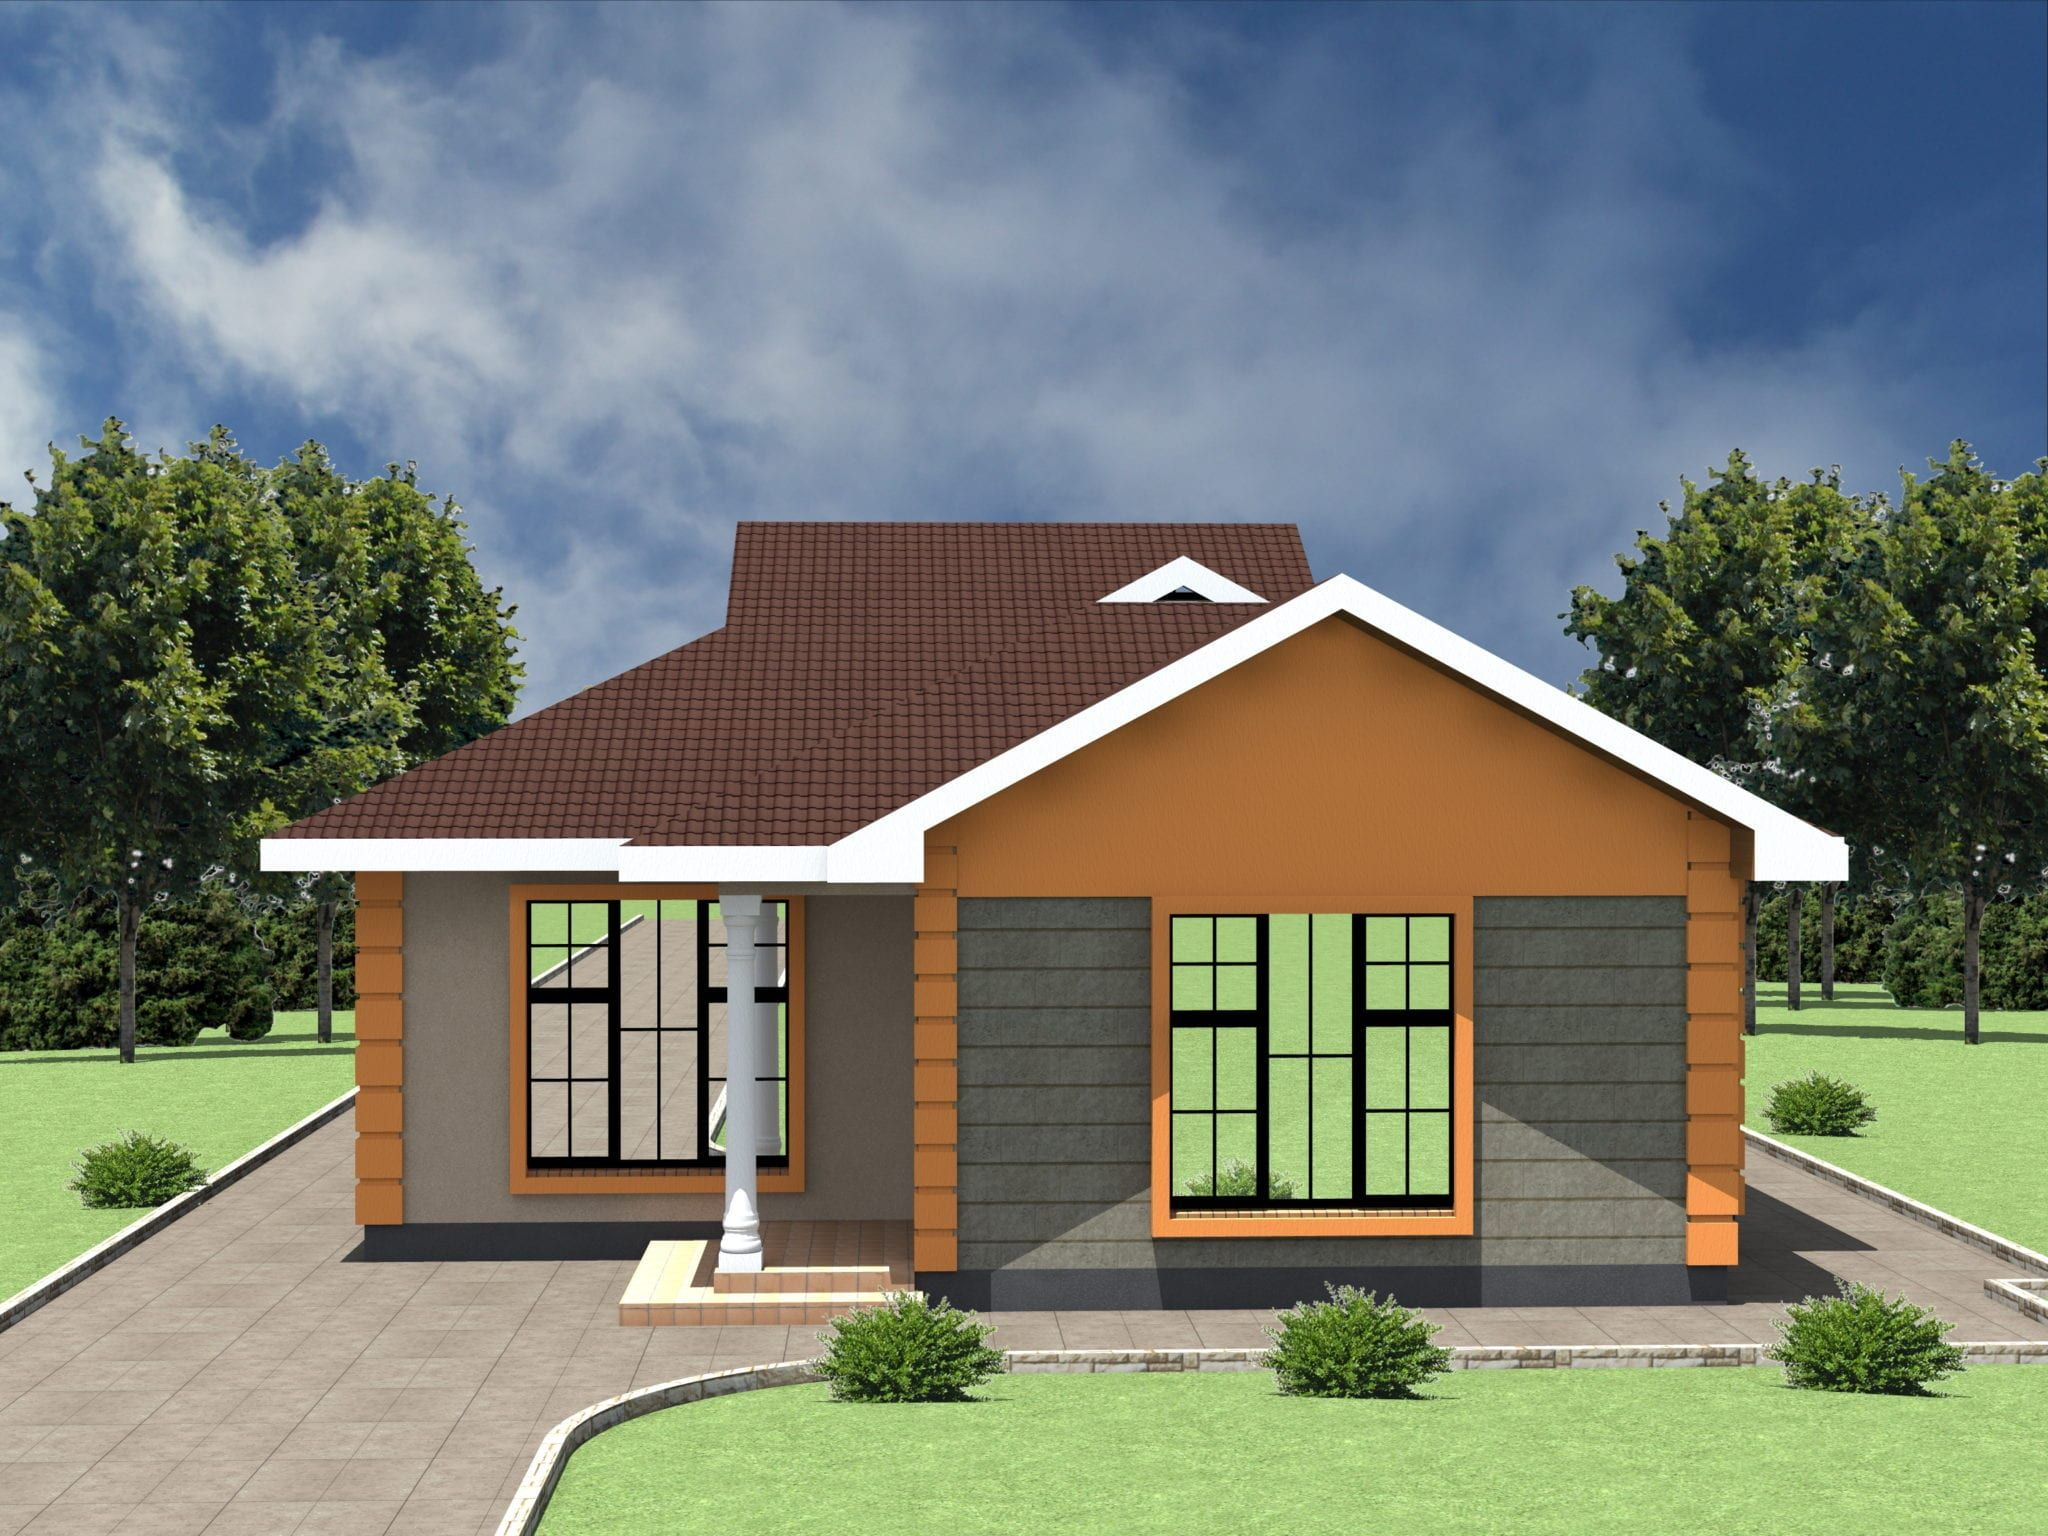 Low Cost 2 Bedroom House Plan In Kenya Hpd Consult 2 Bedroom House Plans 2 Bedroom House Design Two Bedroom House Design